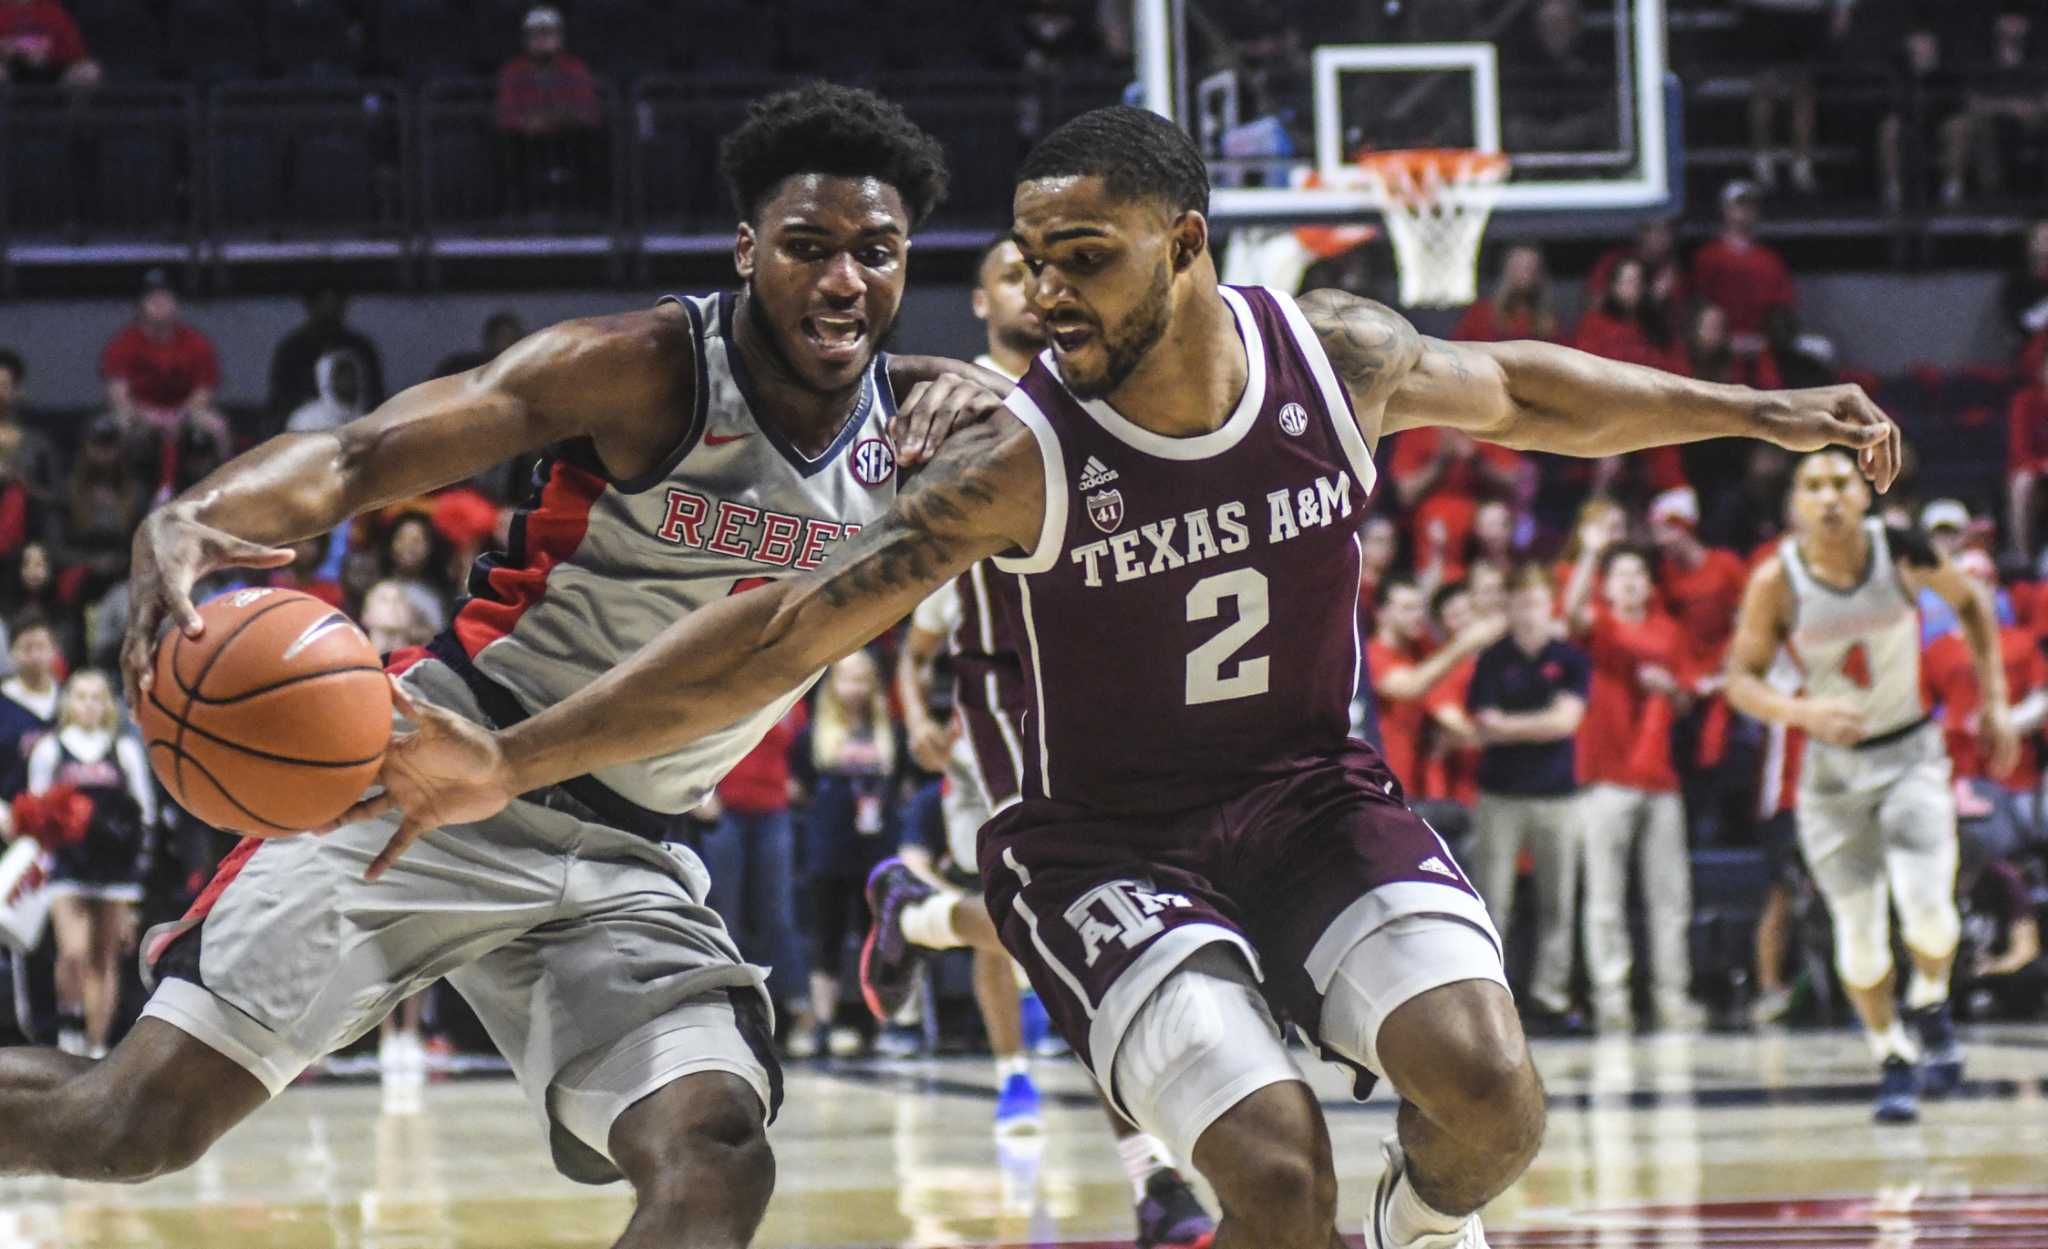 Texas A&M guard T.J. Starks suspended indefinitely